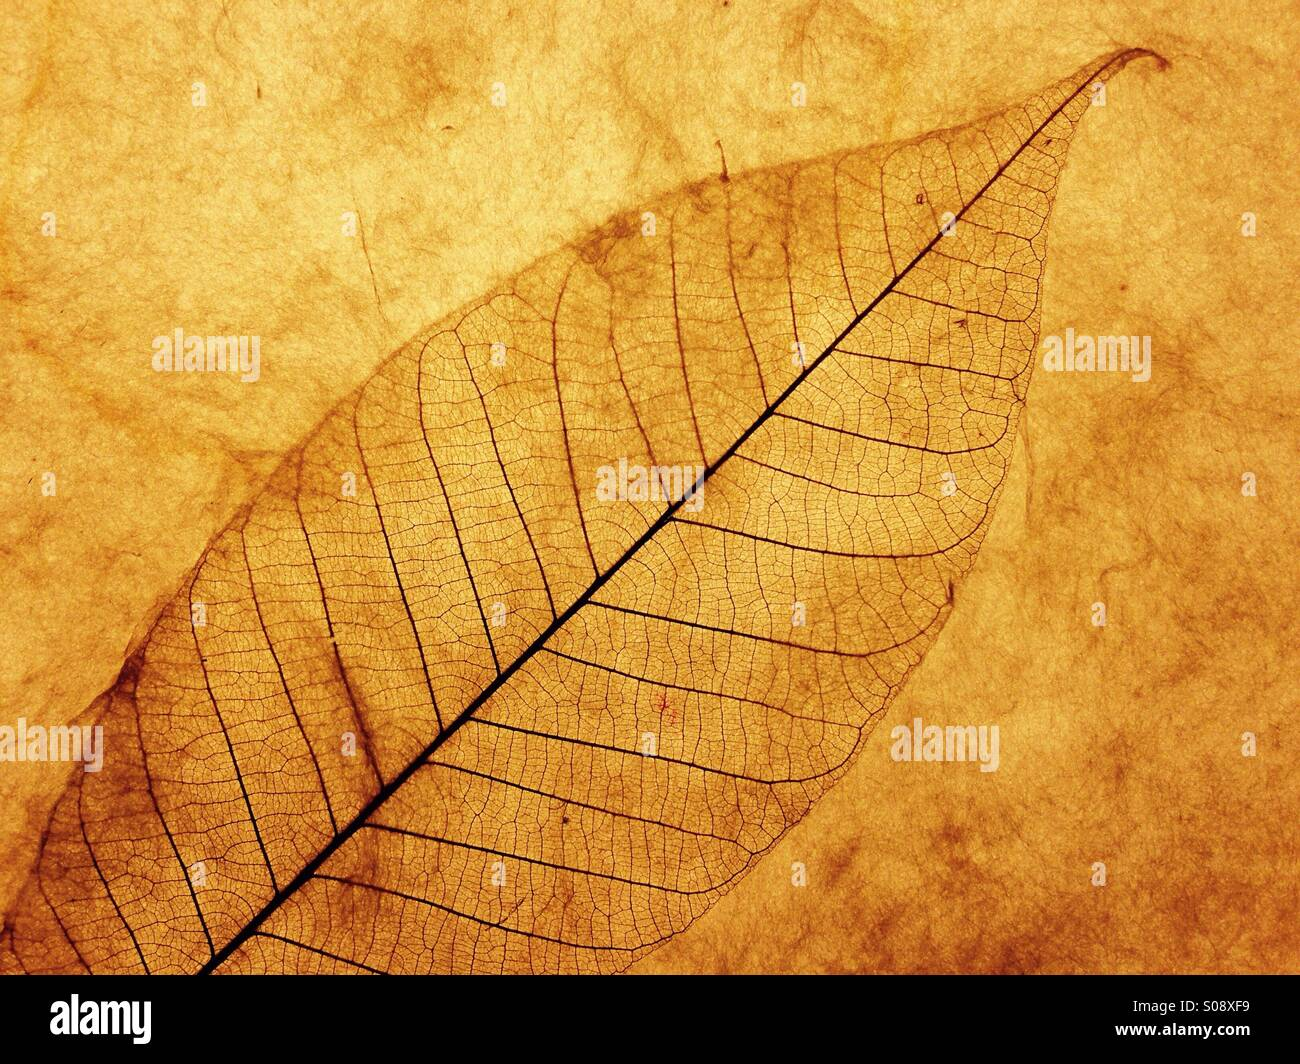 Backlit leaf on art paper. - Stock Image